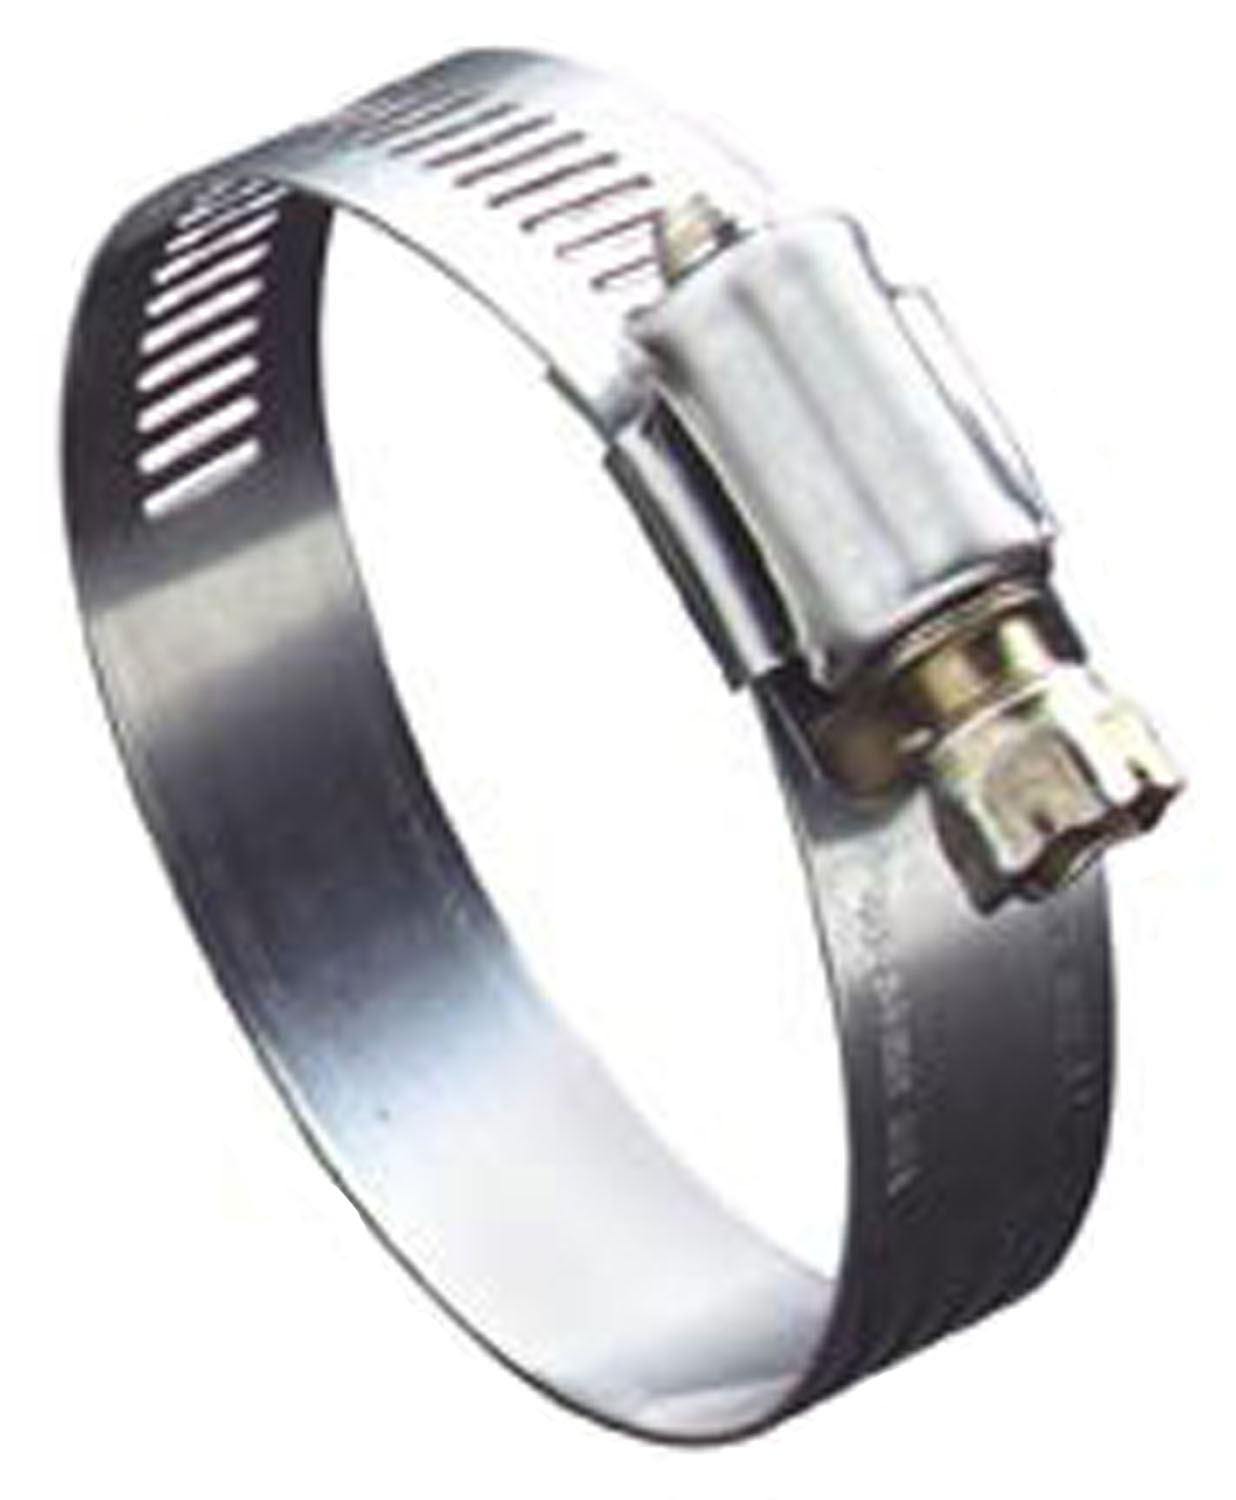 Collared screw hose clamps dupage products group